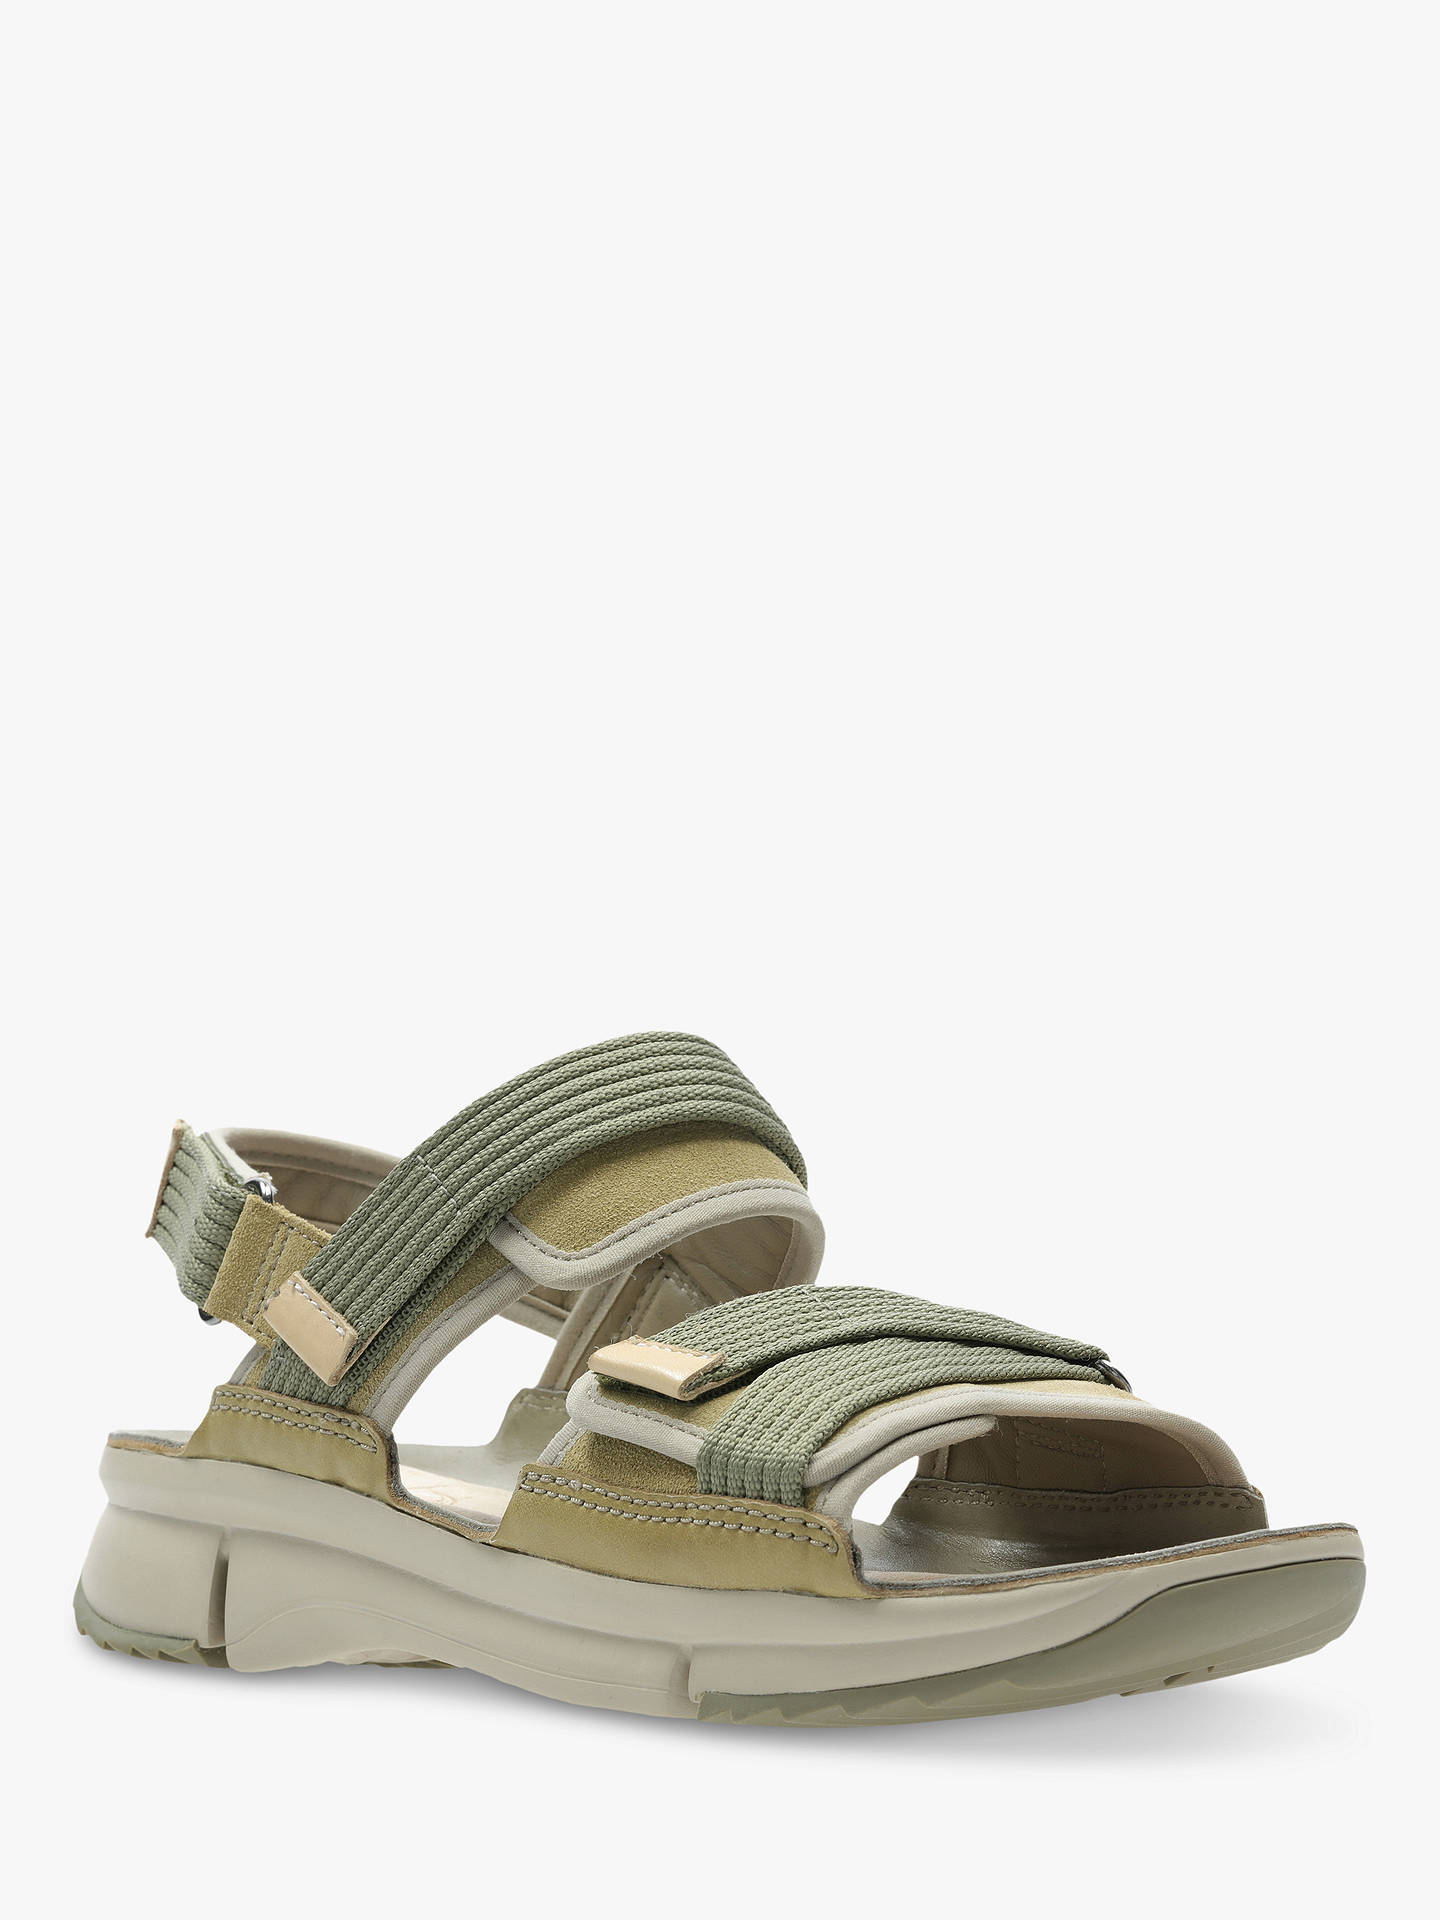 Buy Clarks Tri Walk Strap Sandals, Khaki Combi Suede, 3.5 Online at johnlewis.com